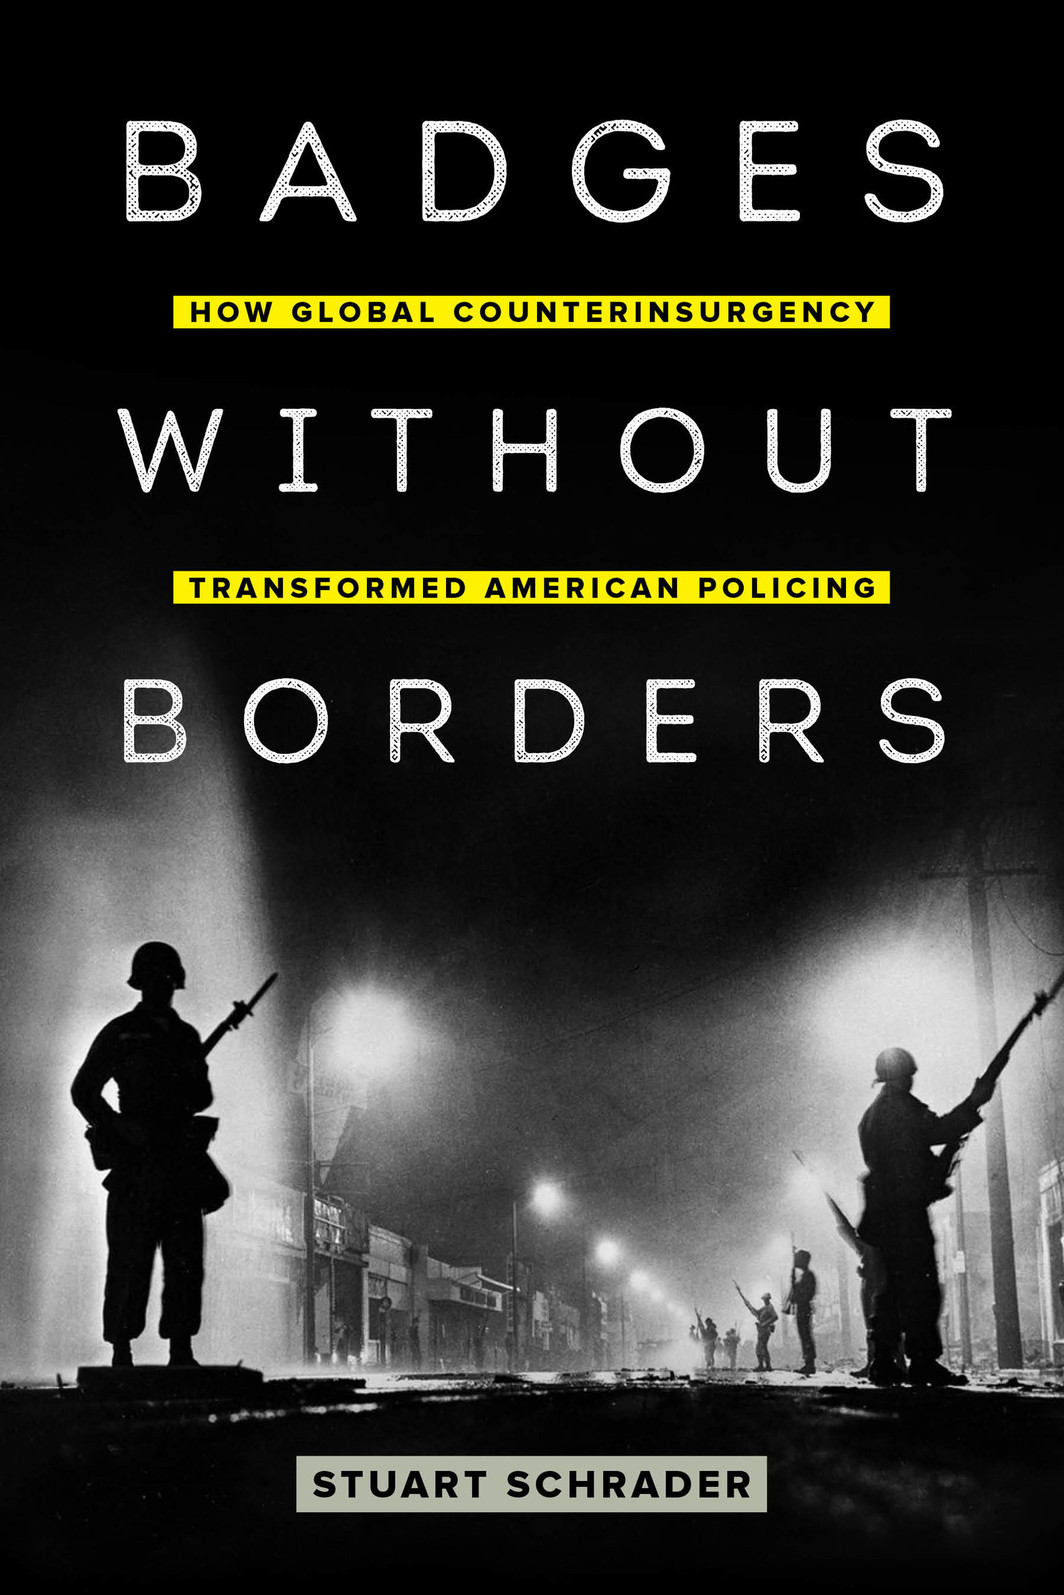 The cover of Badges without Borders: How Global Counterinsurgency Transformed American Policing